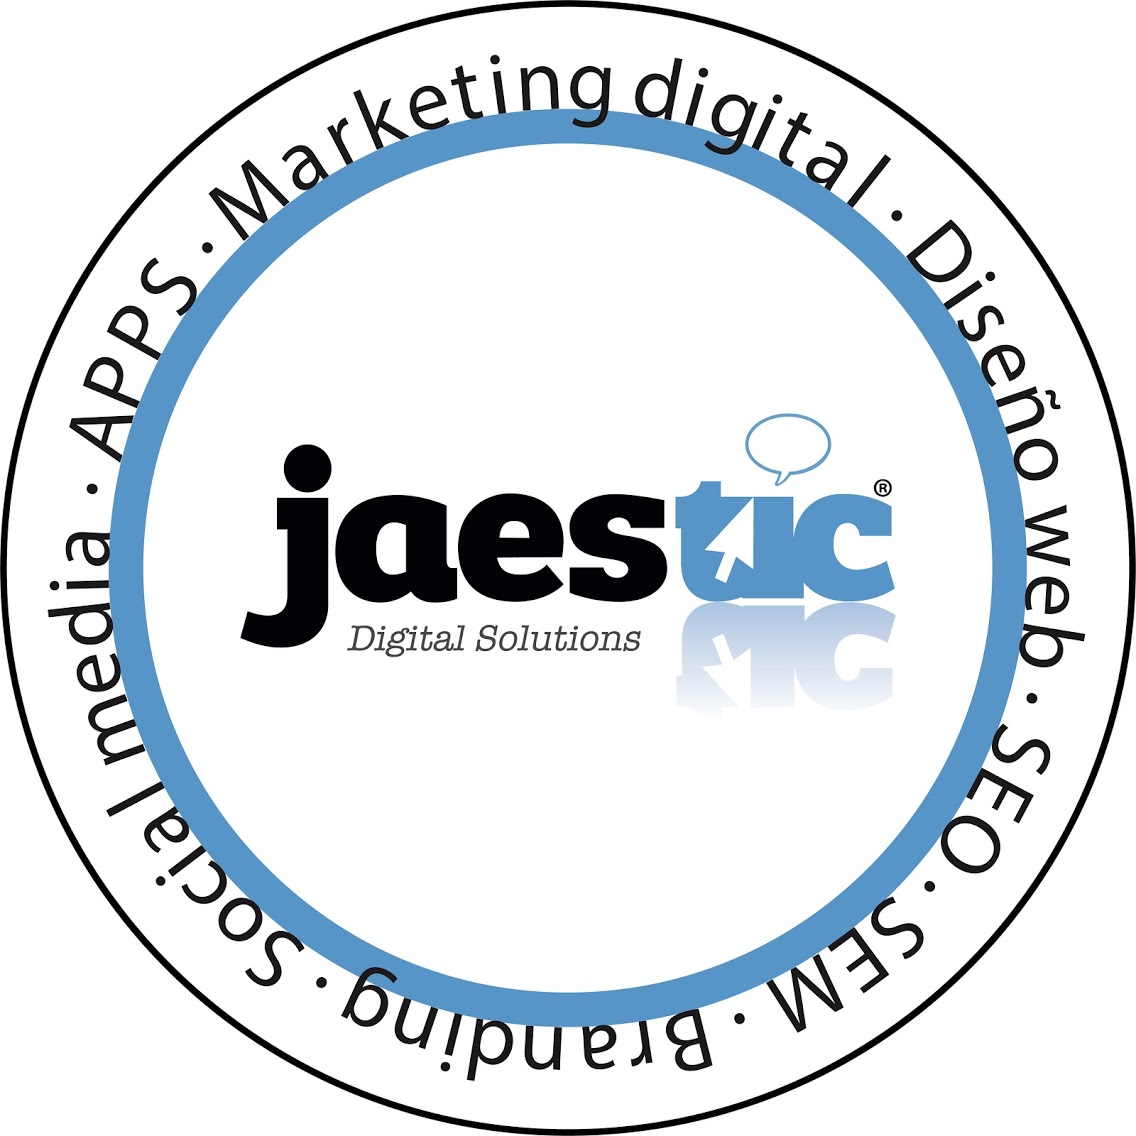 JAESTIC - Digital Solutions